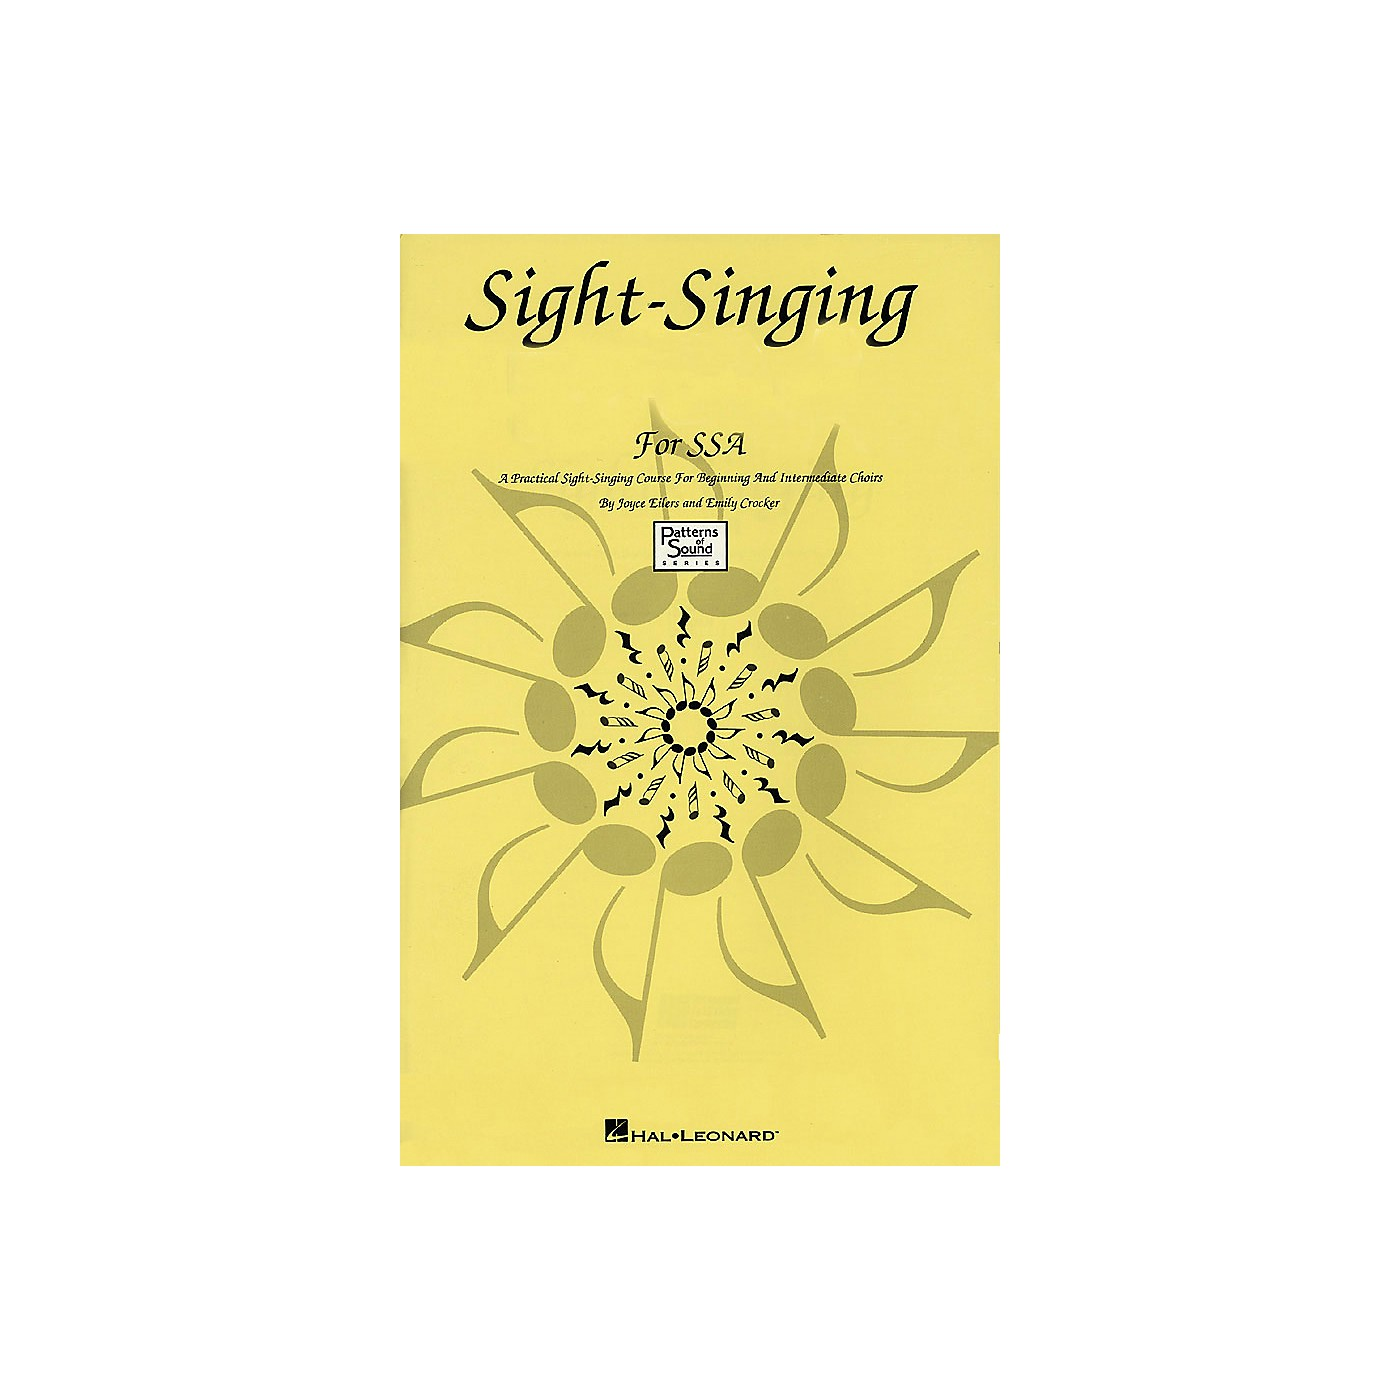 Hal Leonard Sight-Singing For SSA Singer Edition Practical Course For Beg & Intermediate Choirs thumbnail